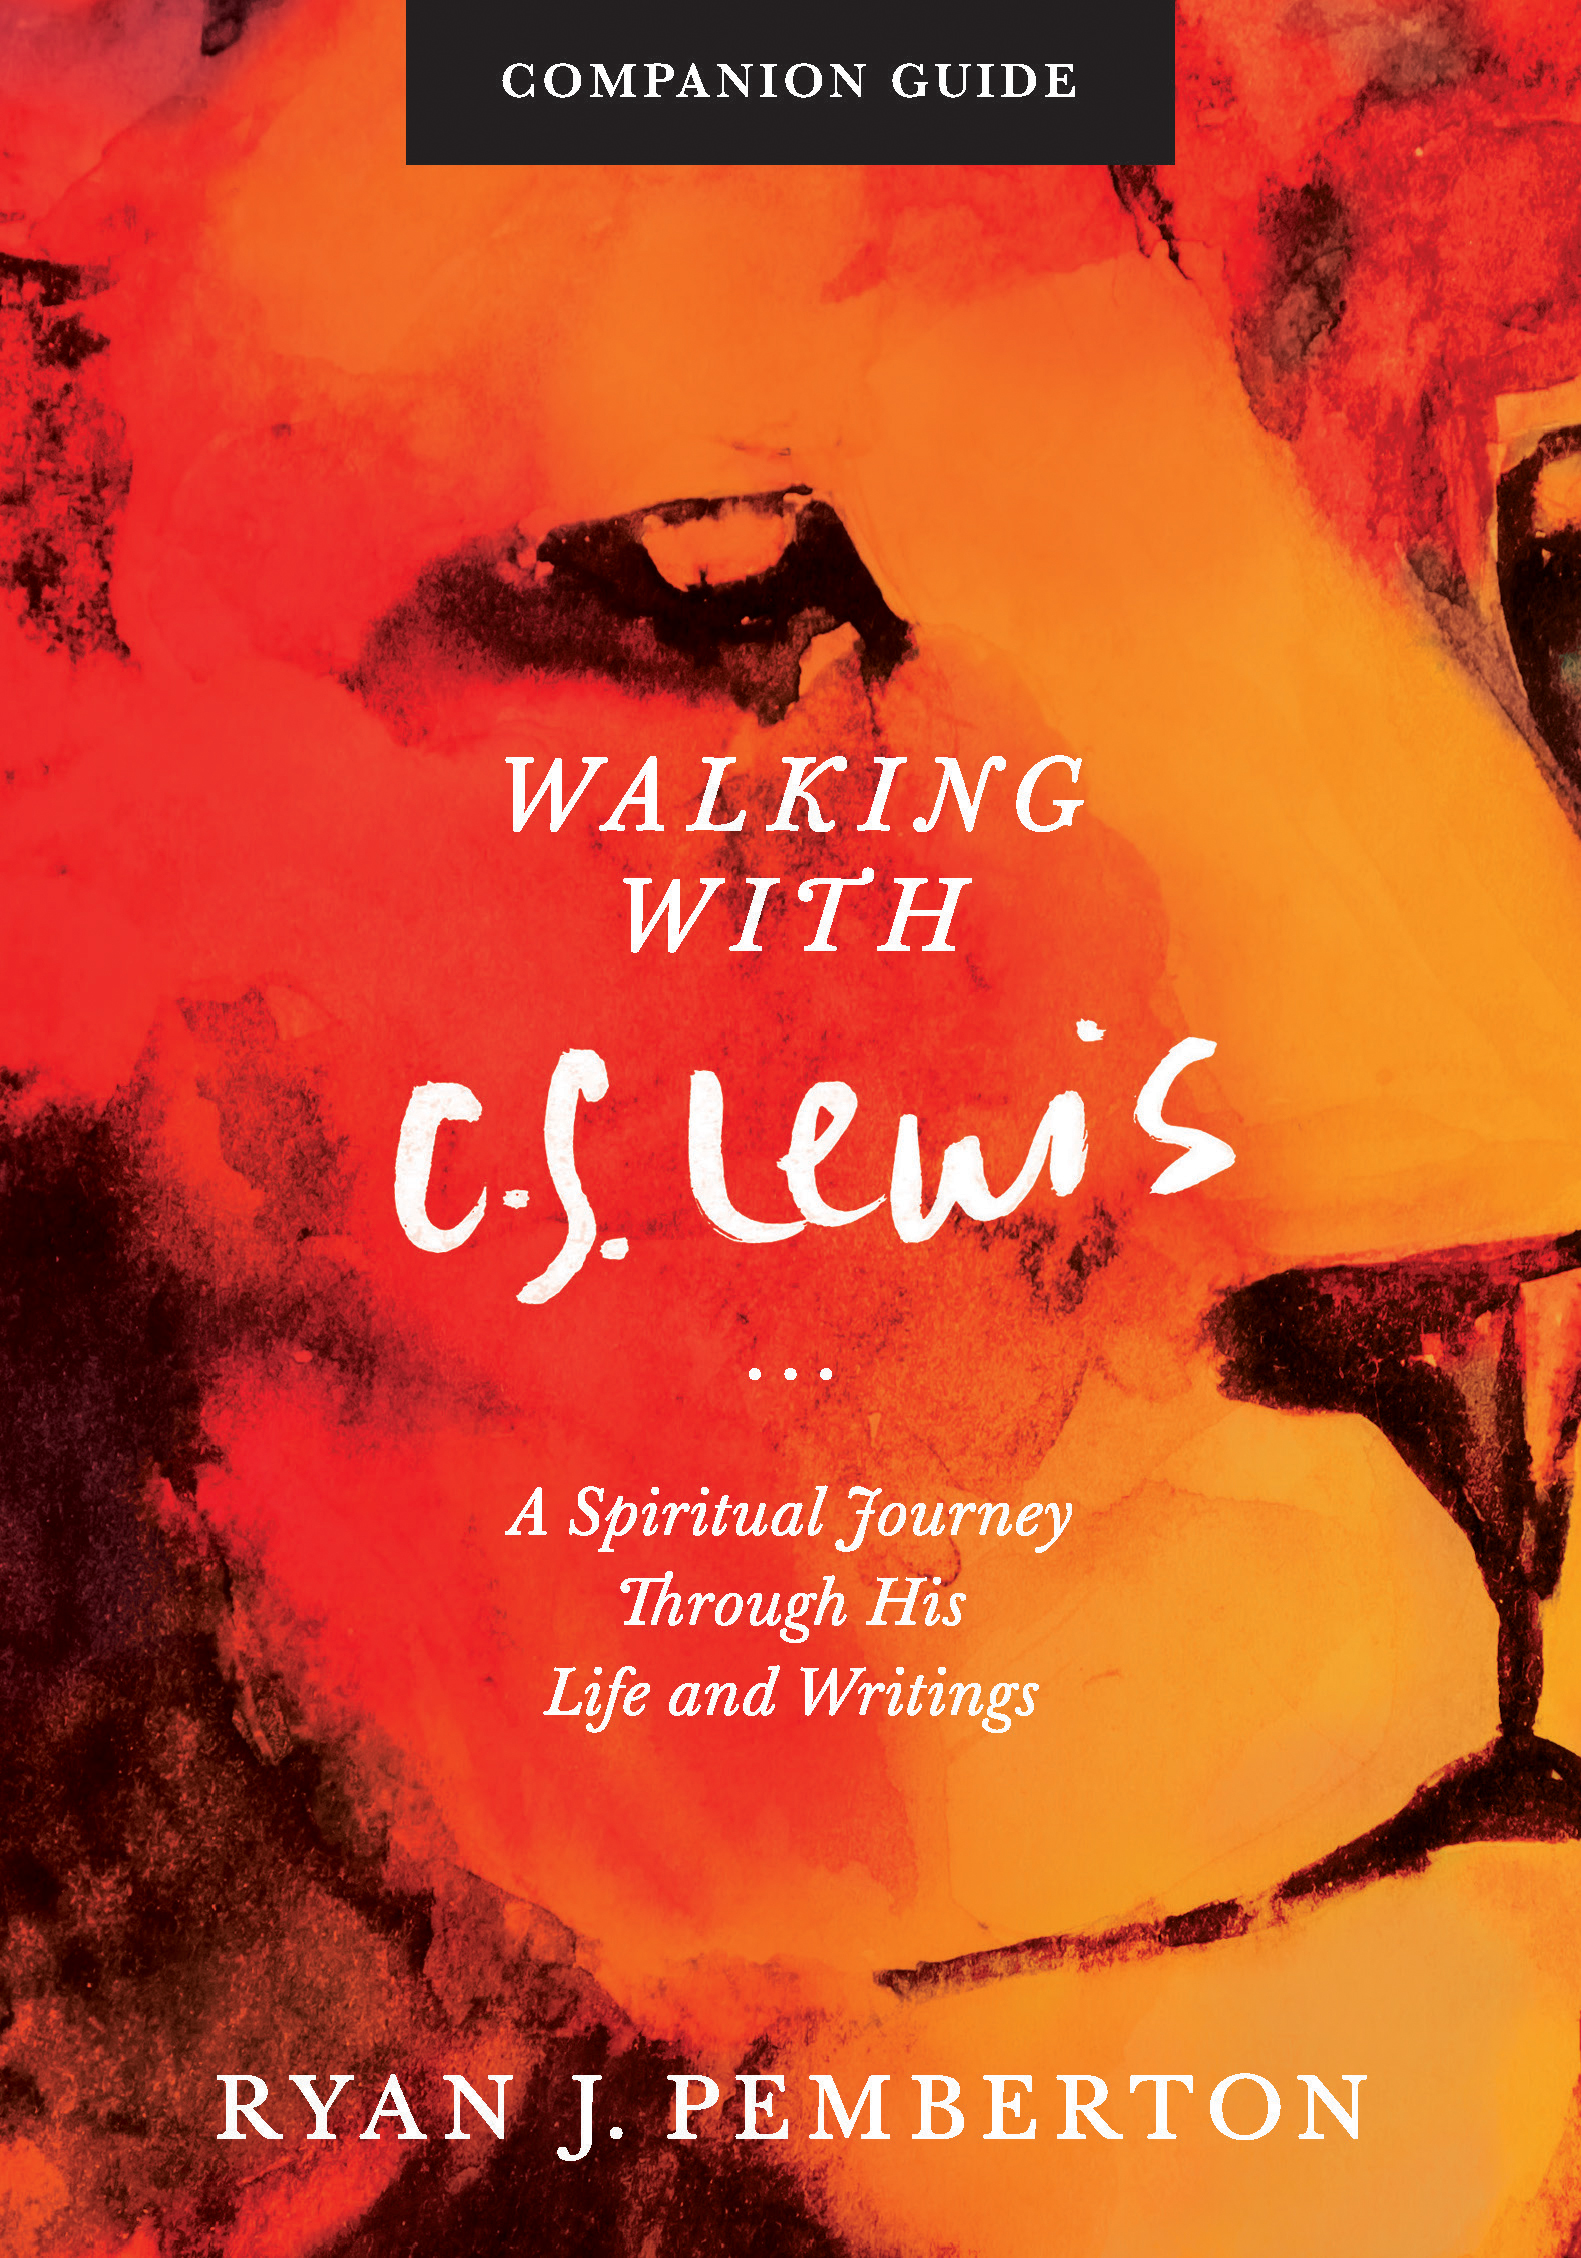 Walking with C. S. Lewis: A Spiritual Journey through His Life and Writings (A Companion Guide)